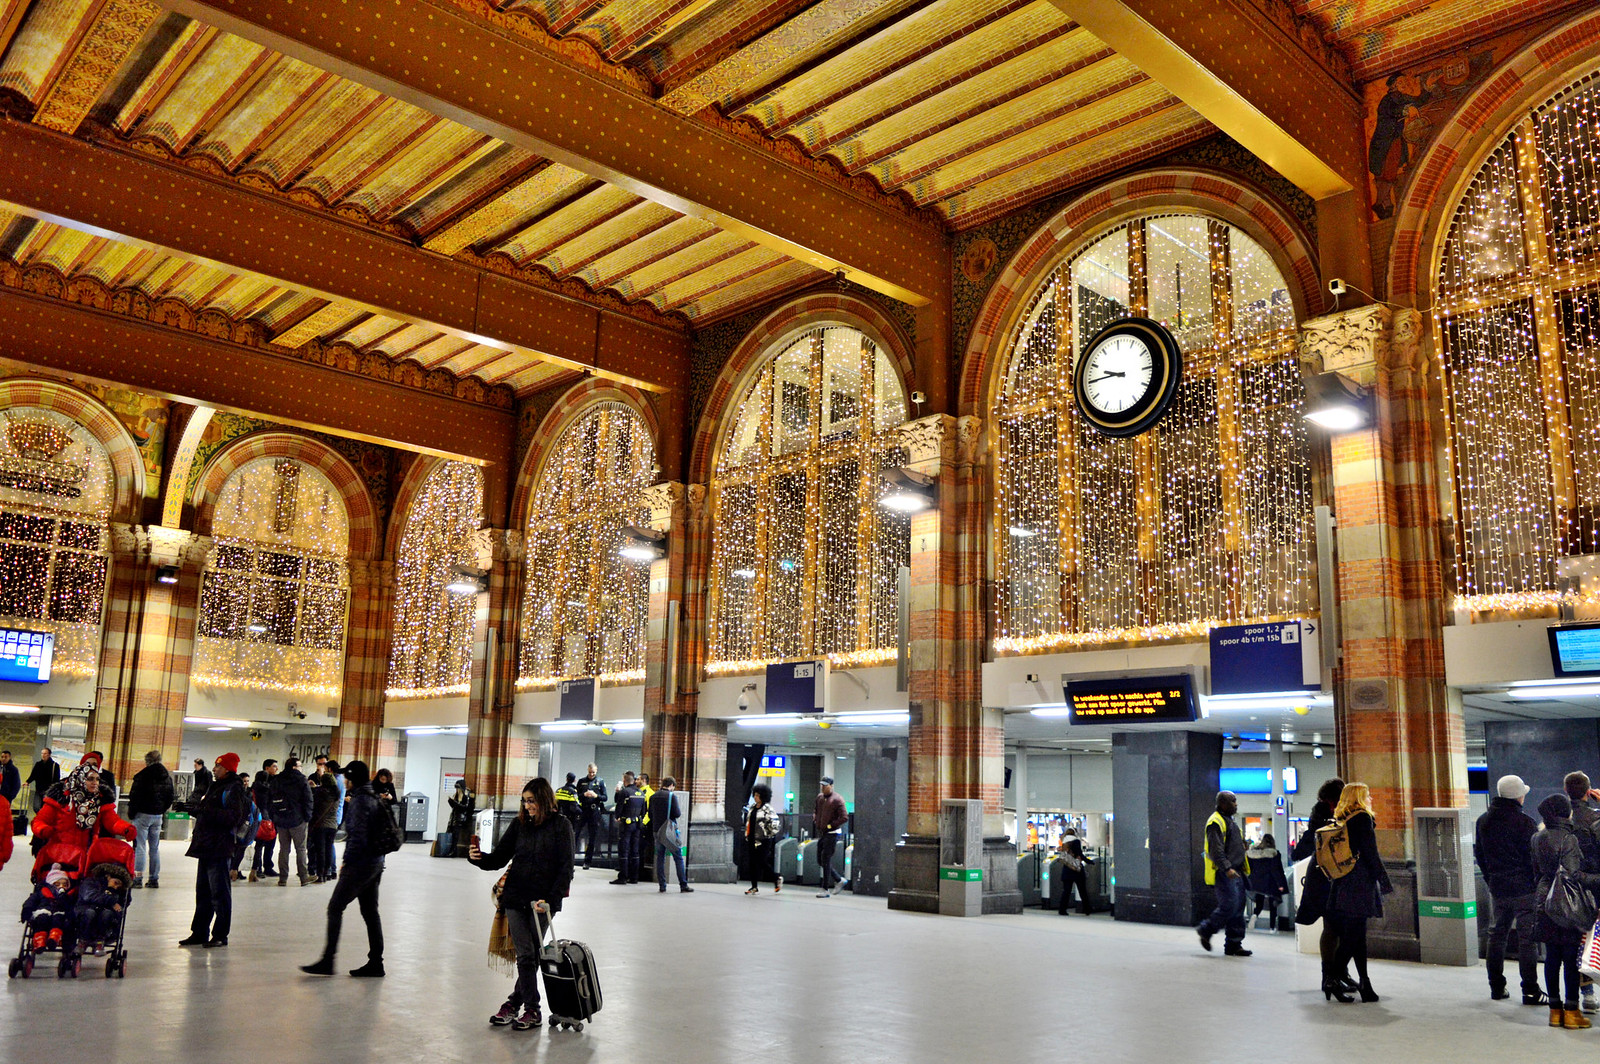 Amsterdam Central Station in December